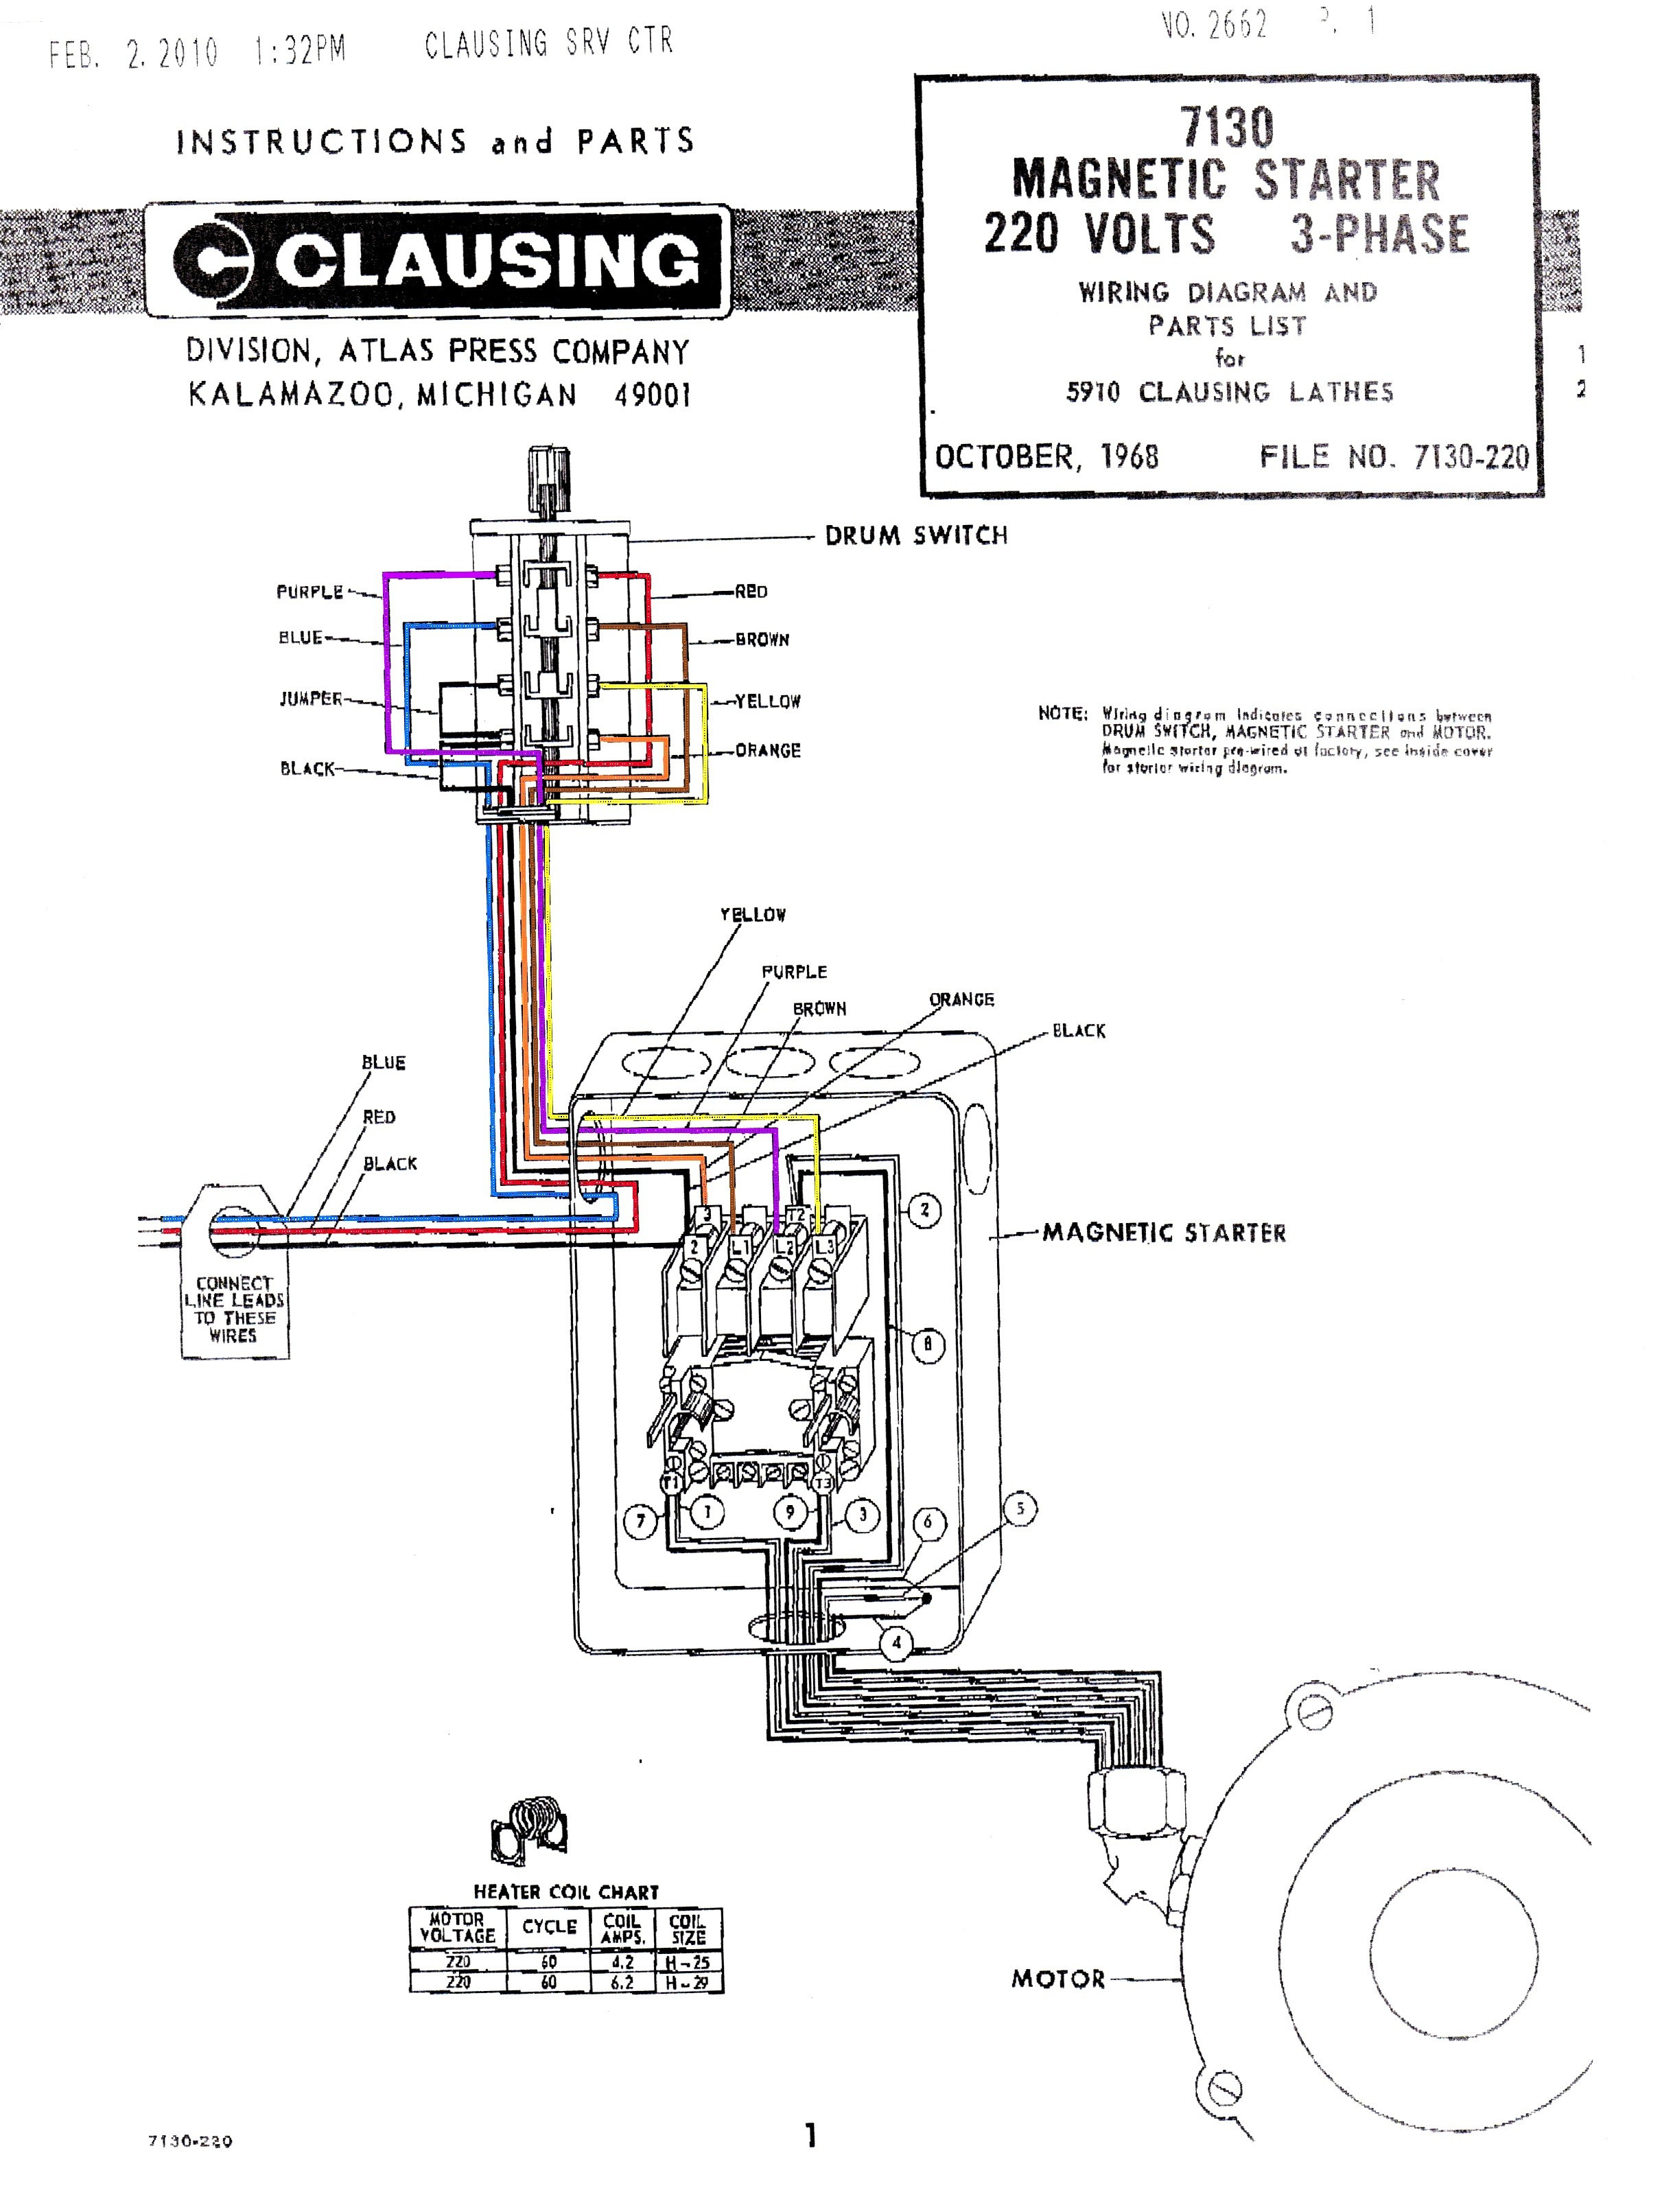 furnas contactor wiring diagram furnas motor starter wiring diagram sample forward reverse contactor wiring diagram